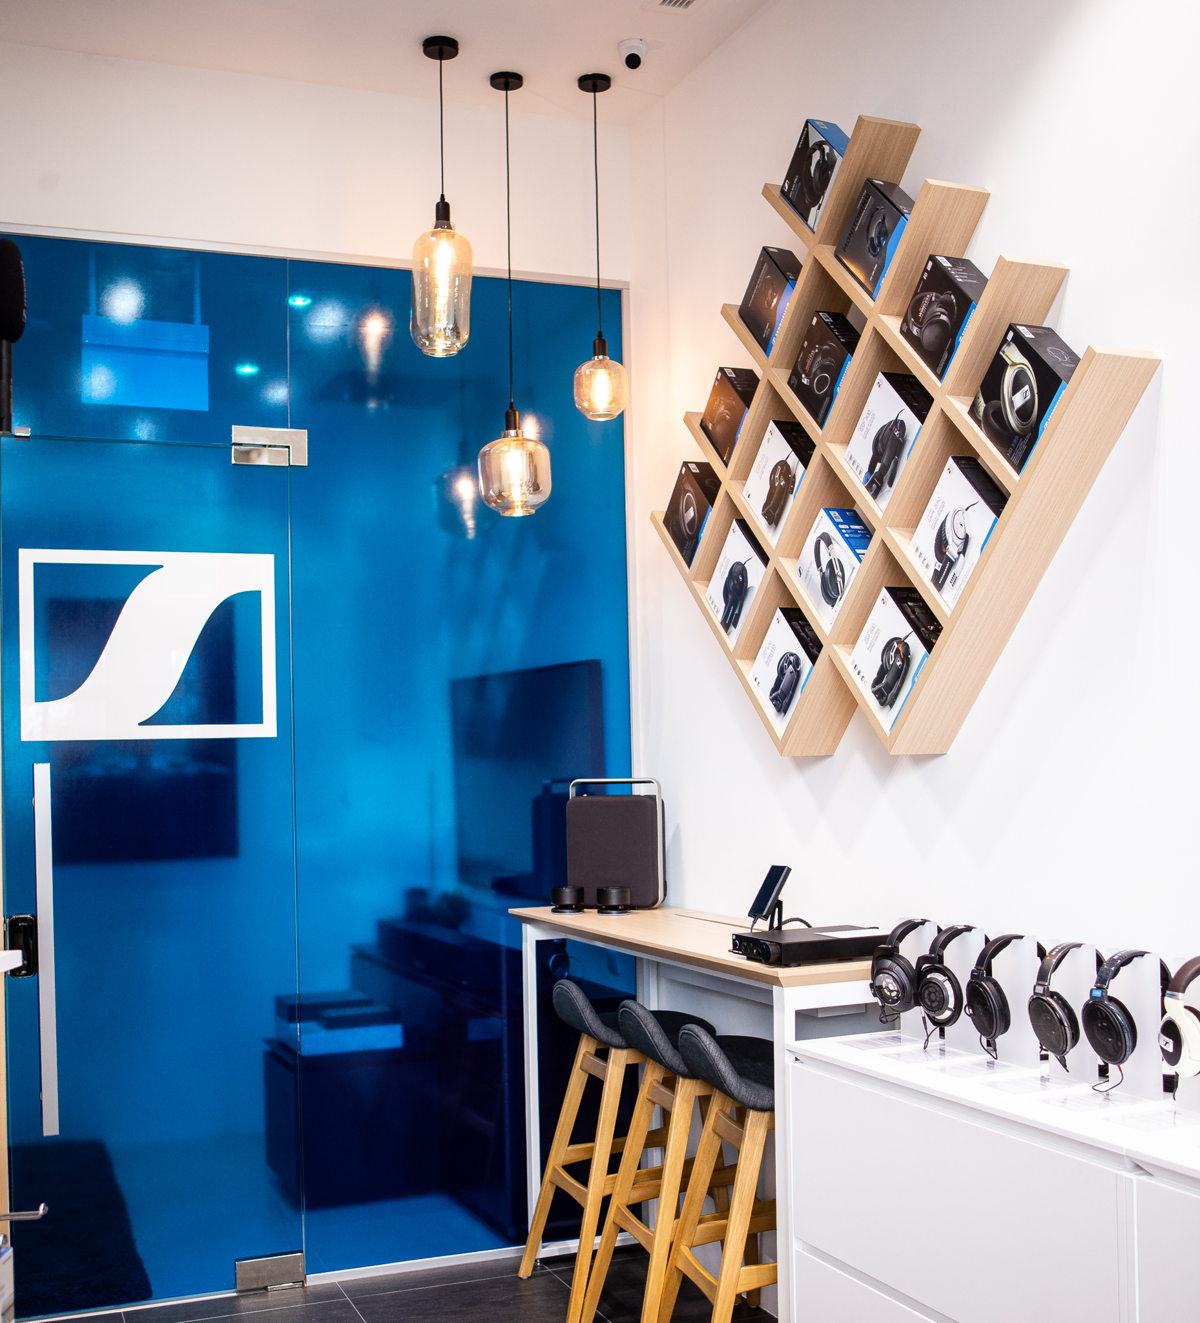 A look inside the Sennheiser Store Marina Bay Sands in Singapore